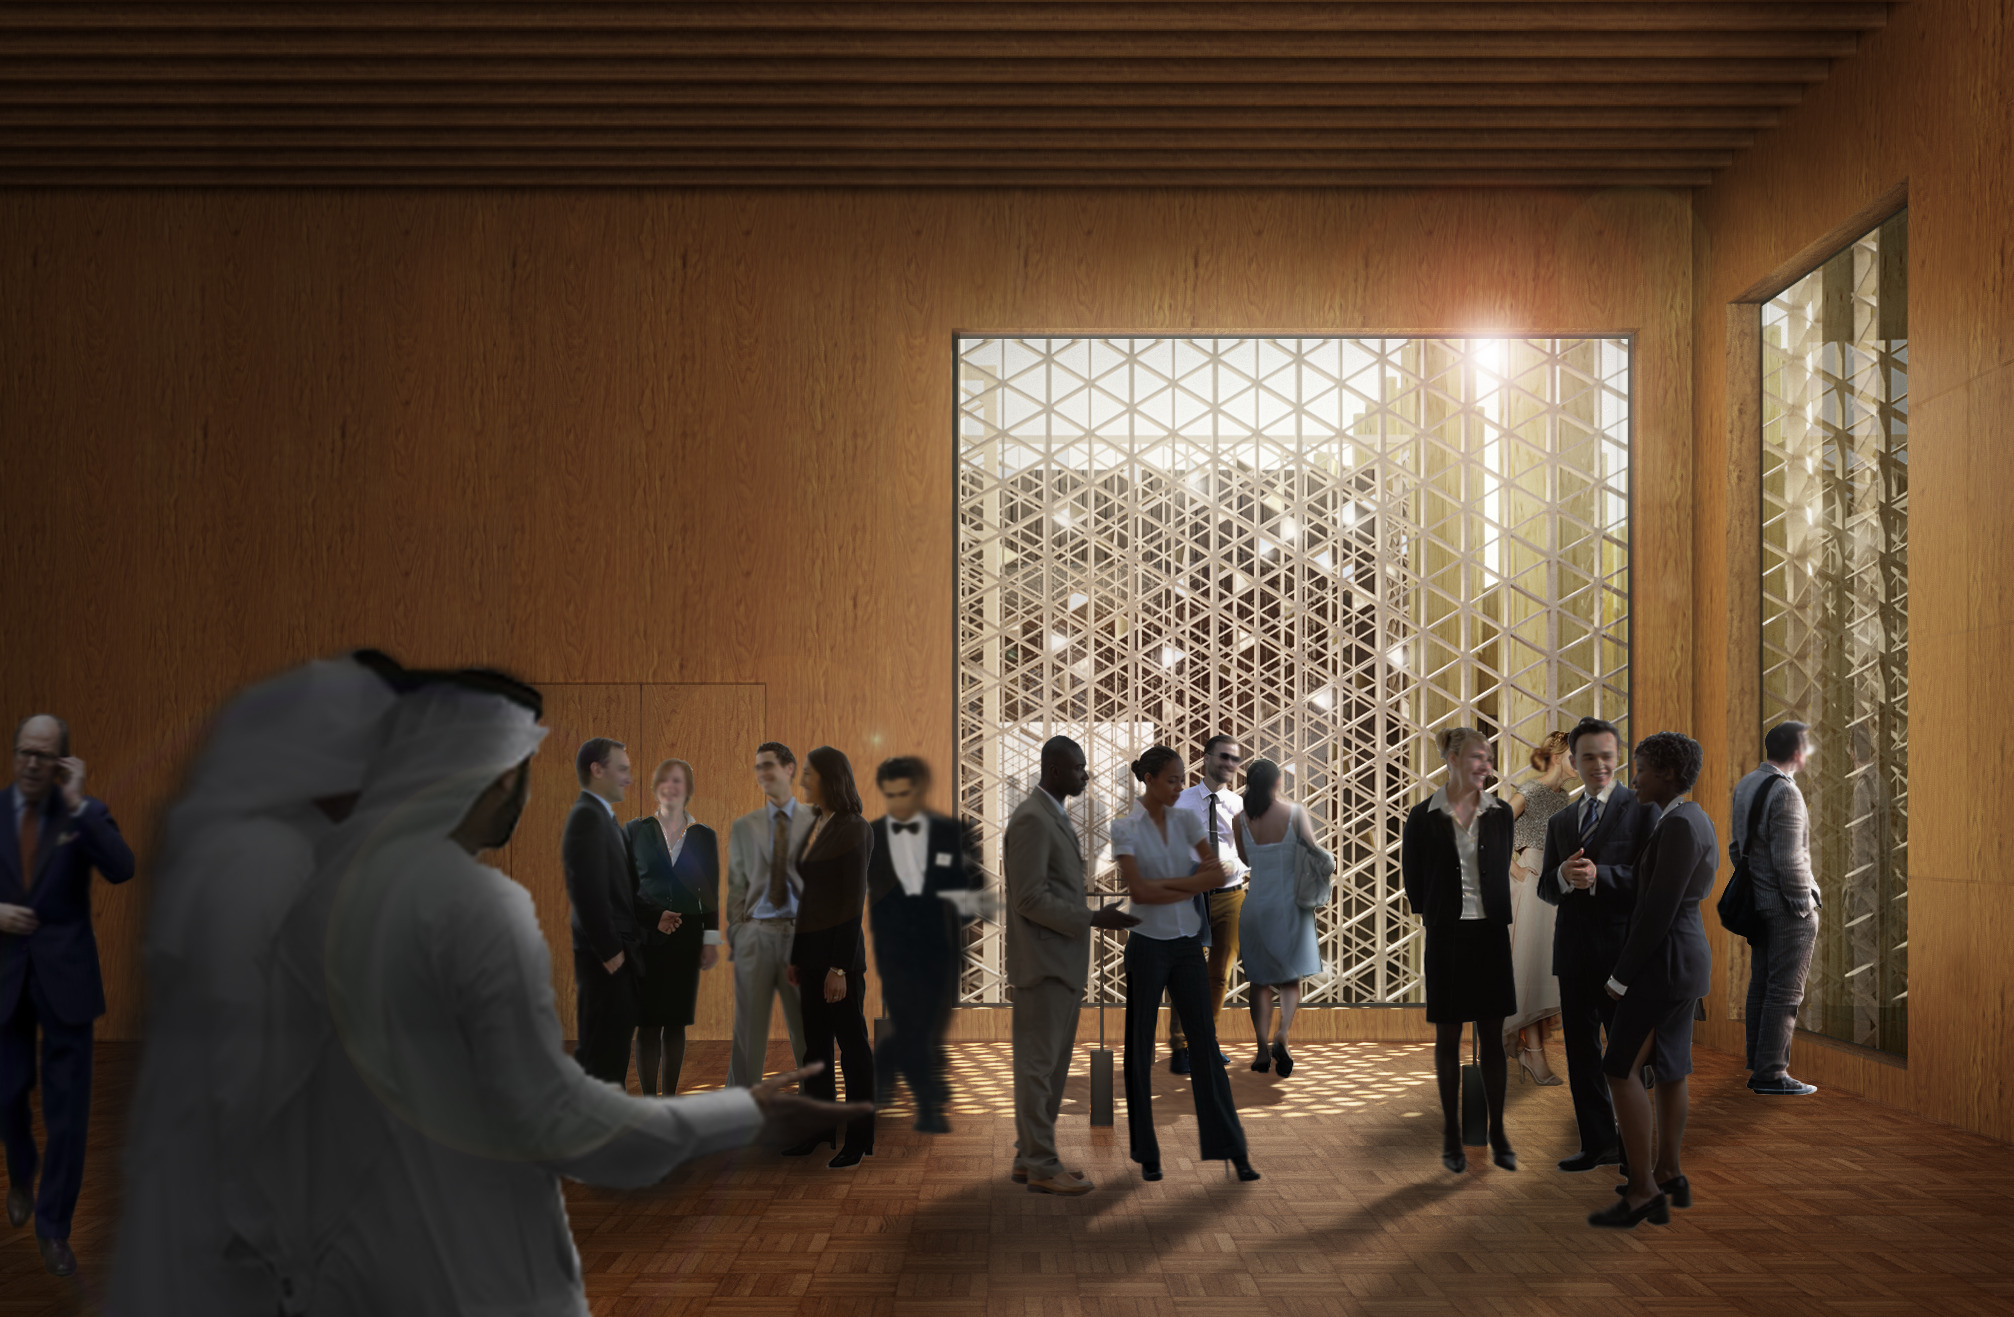 The Swedish Pavilion at Expo 2020 in Dubai: The Forest - Government se